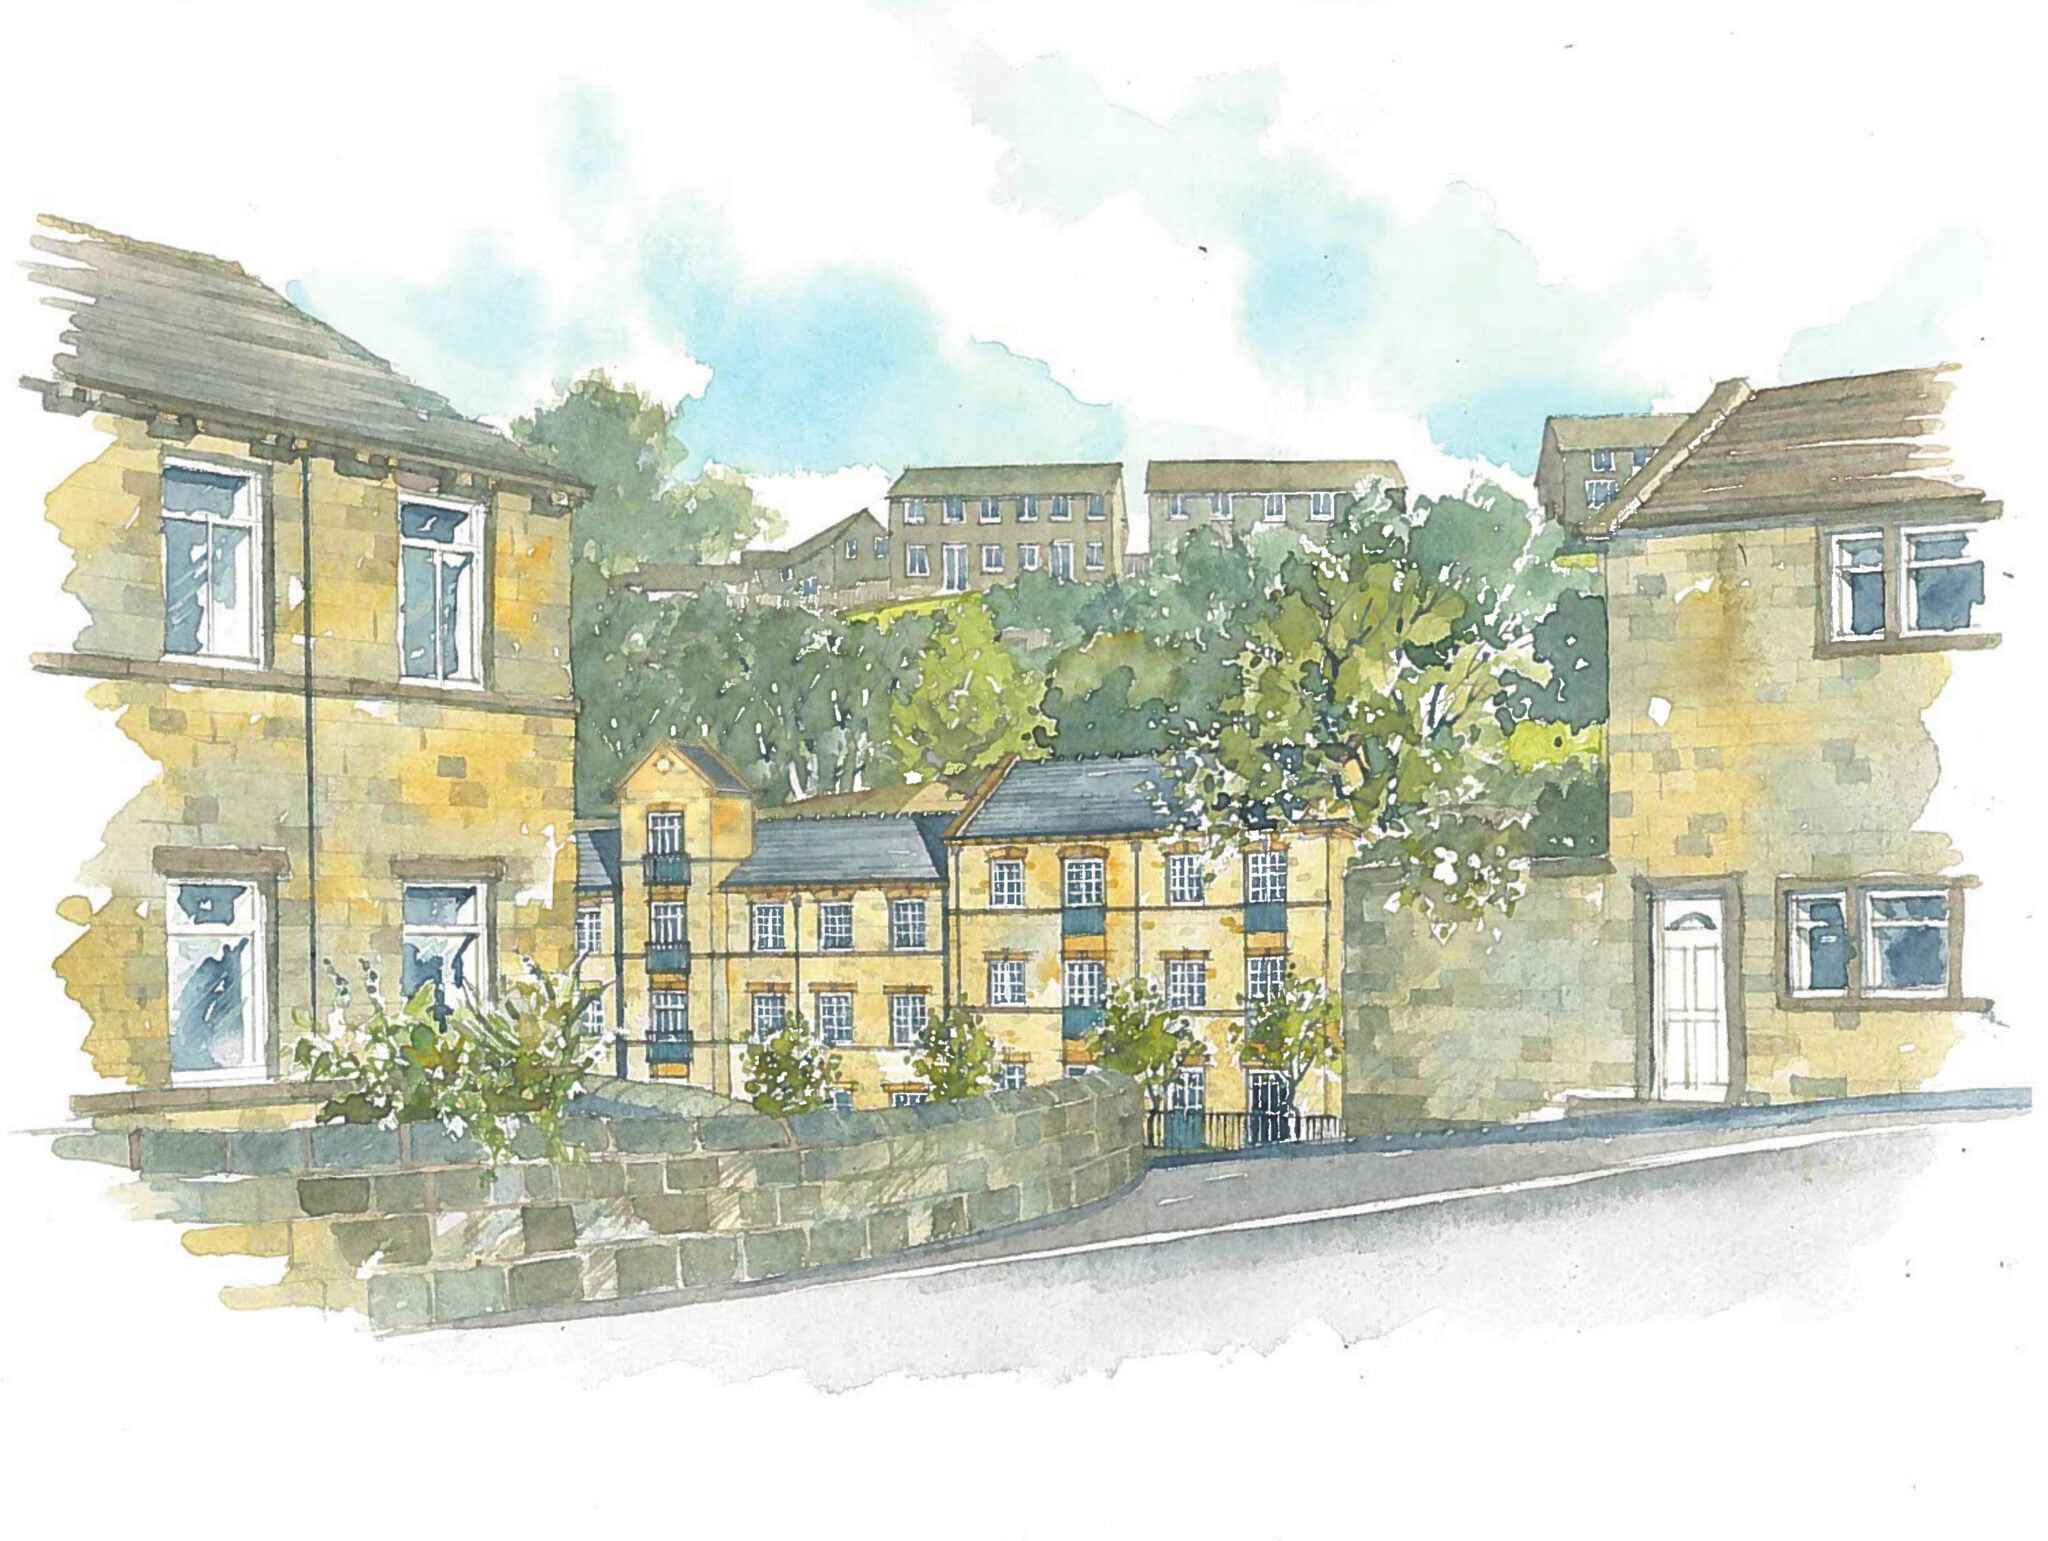 homes in Haworth